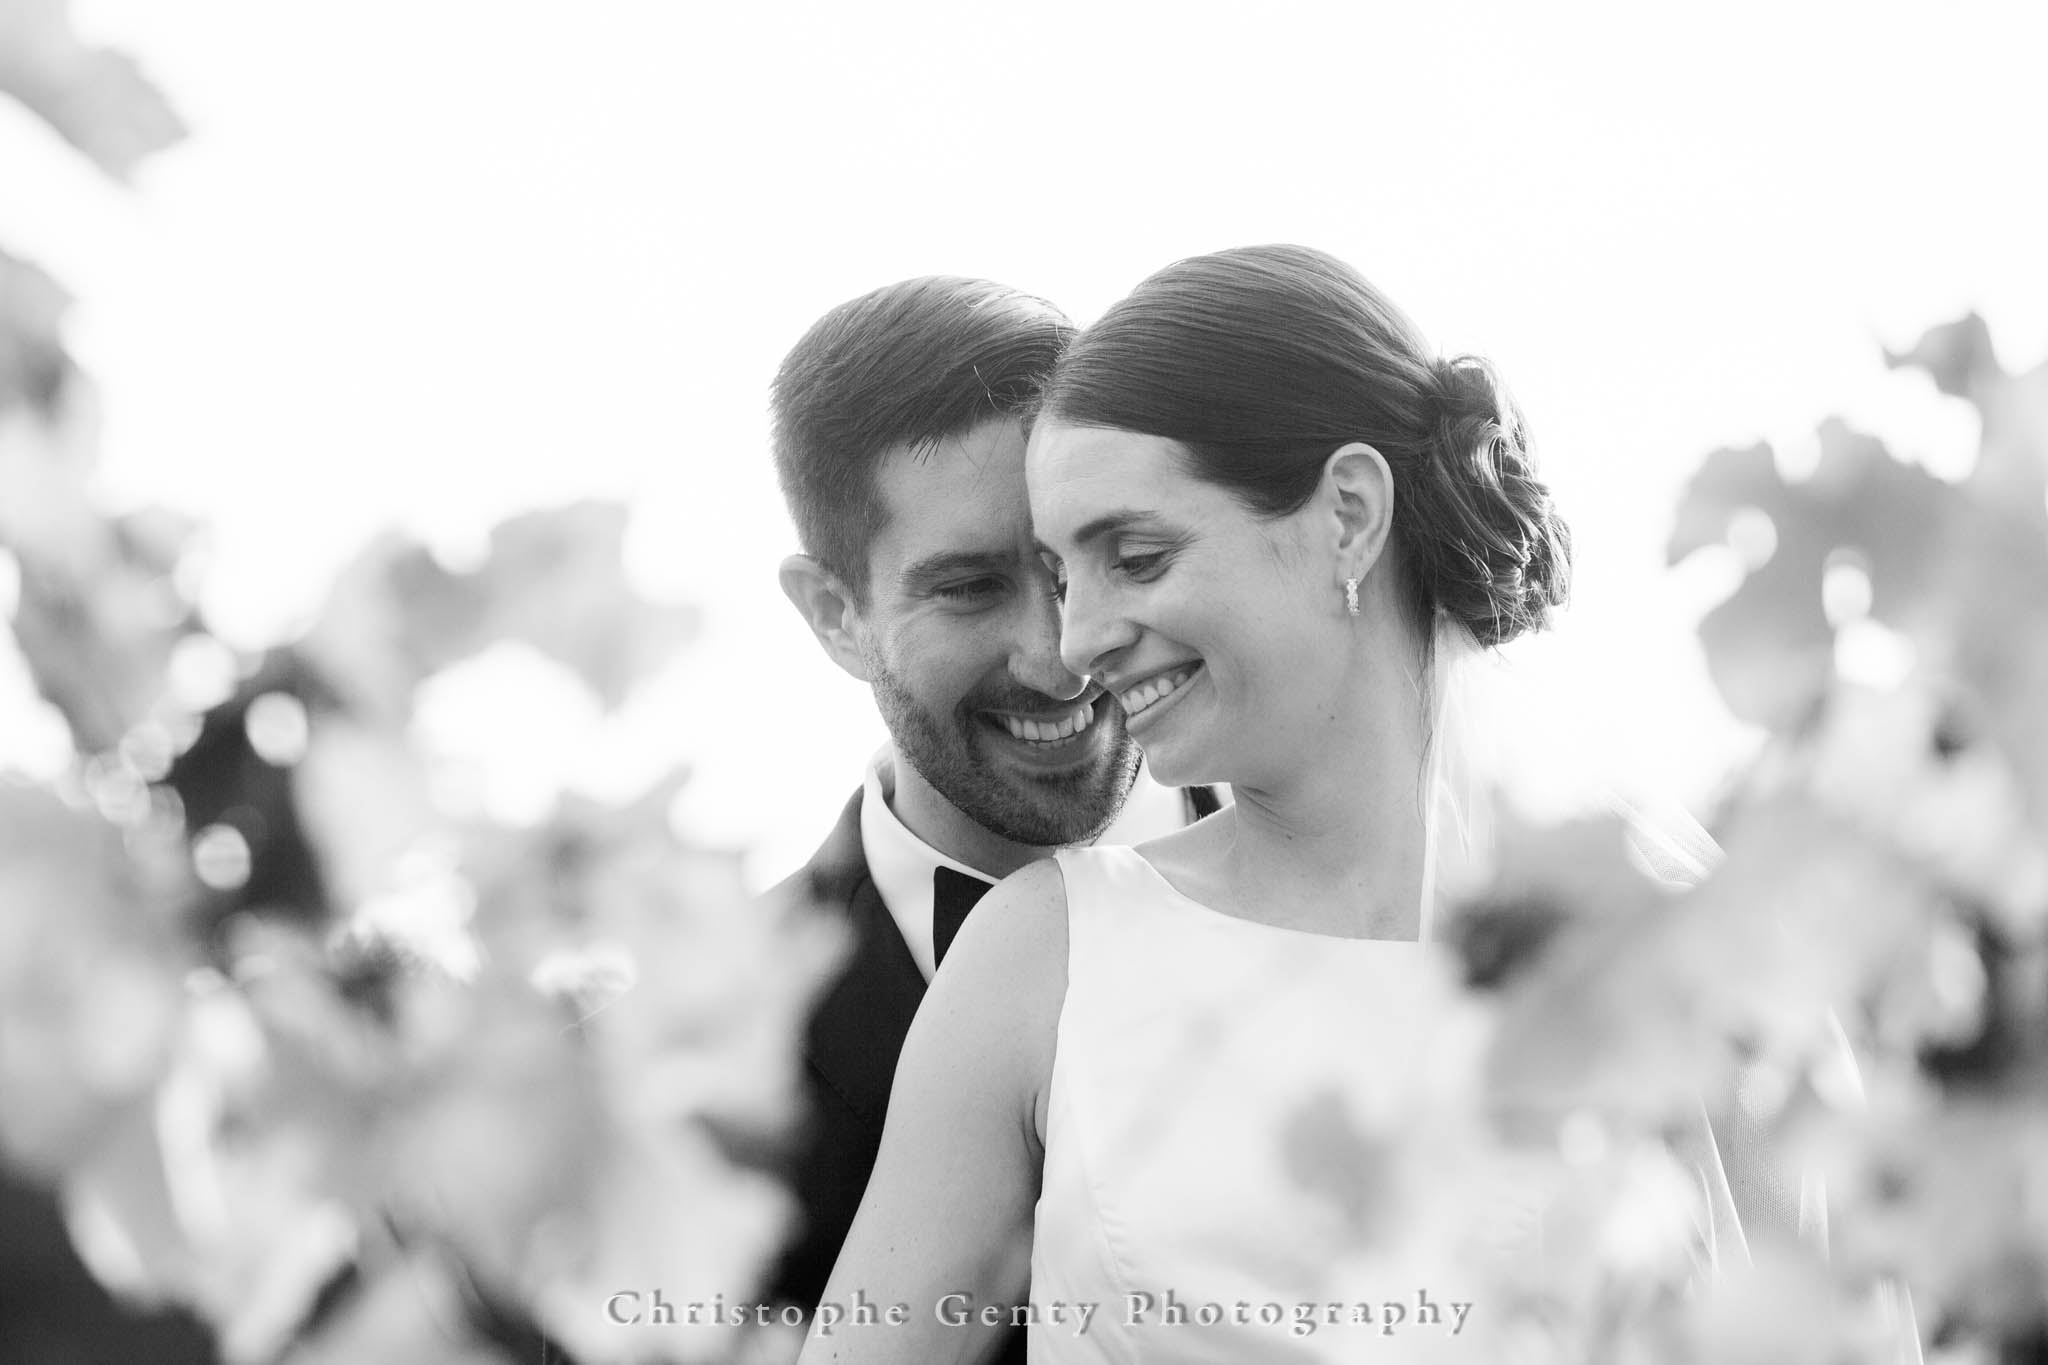 Wedding Photography at a private estate in the Napa Valley, CA | Christophe Genty Photography